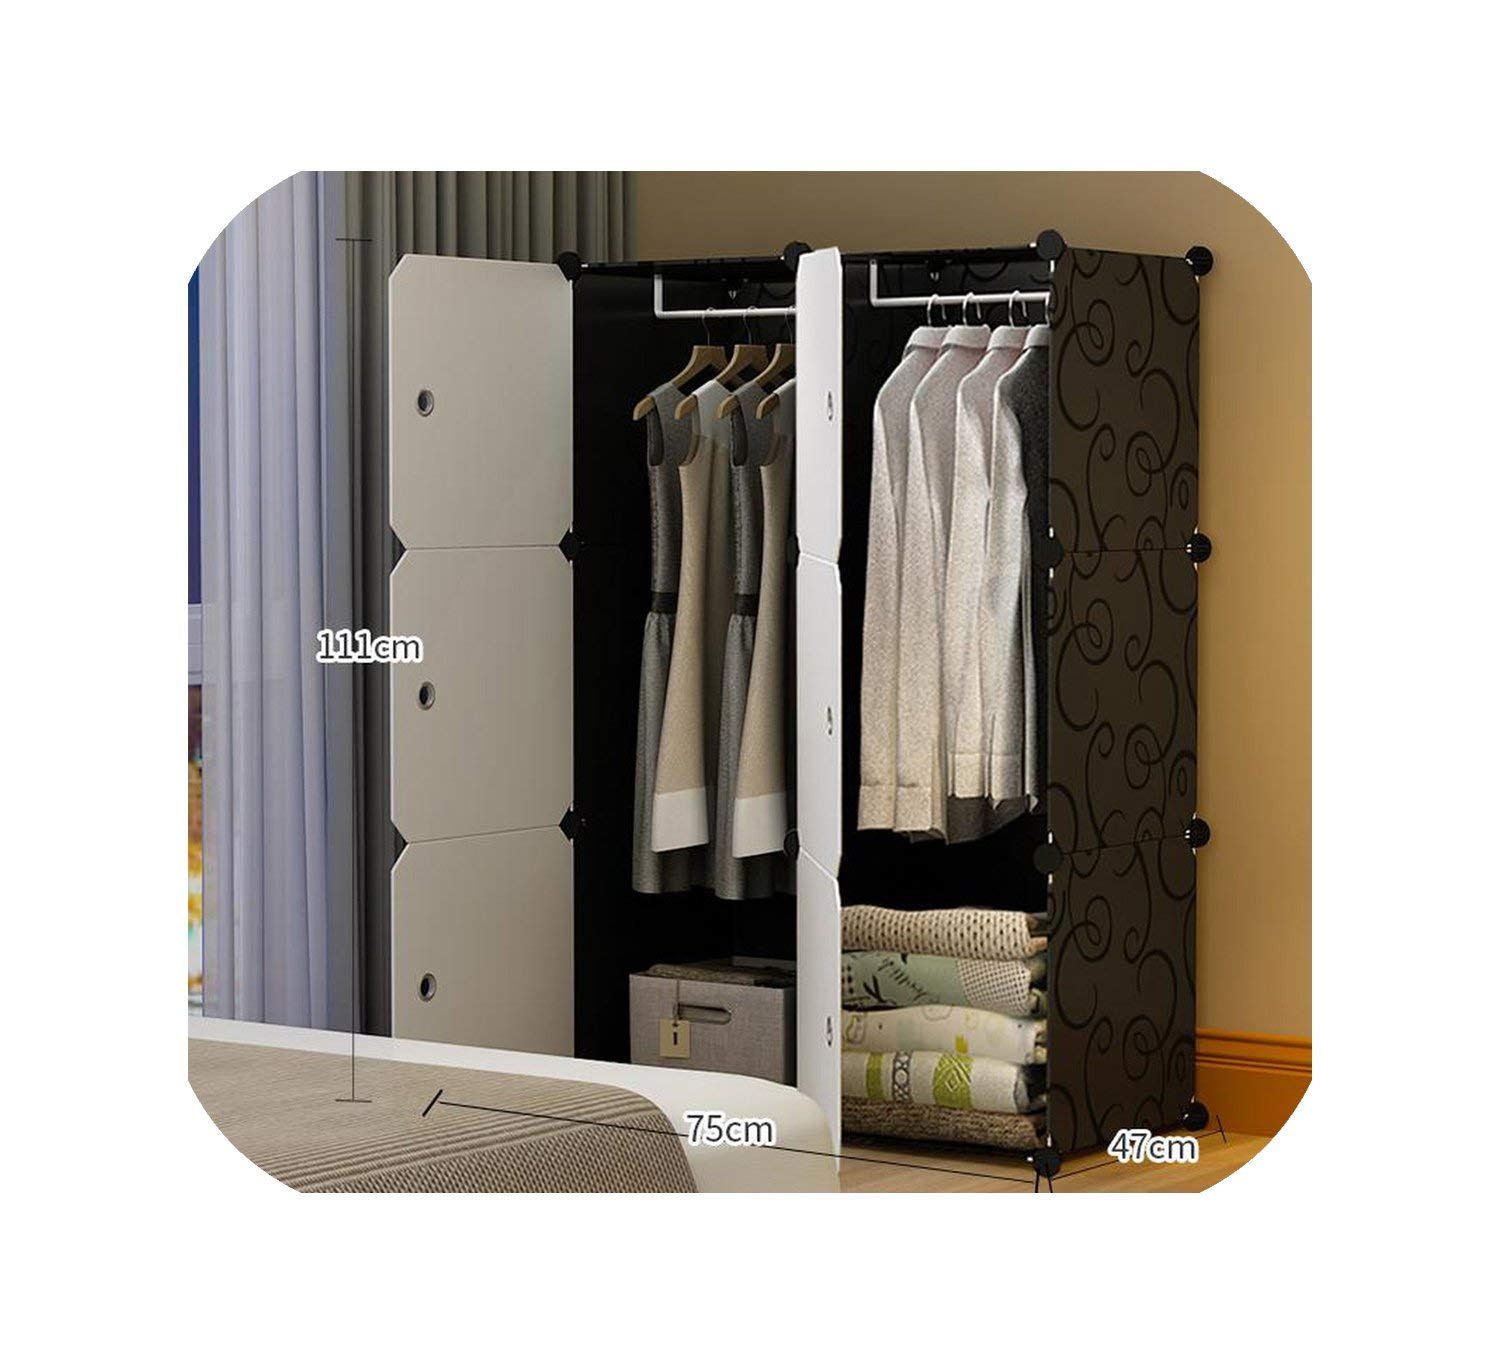 Simple Wardrobe Simple Modern Economy Plastic Assembly Wardrobe Bedroom Space Dormitory Storage Cabinet,Package 1